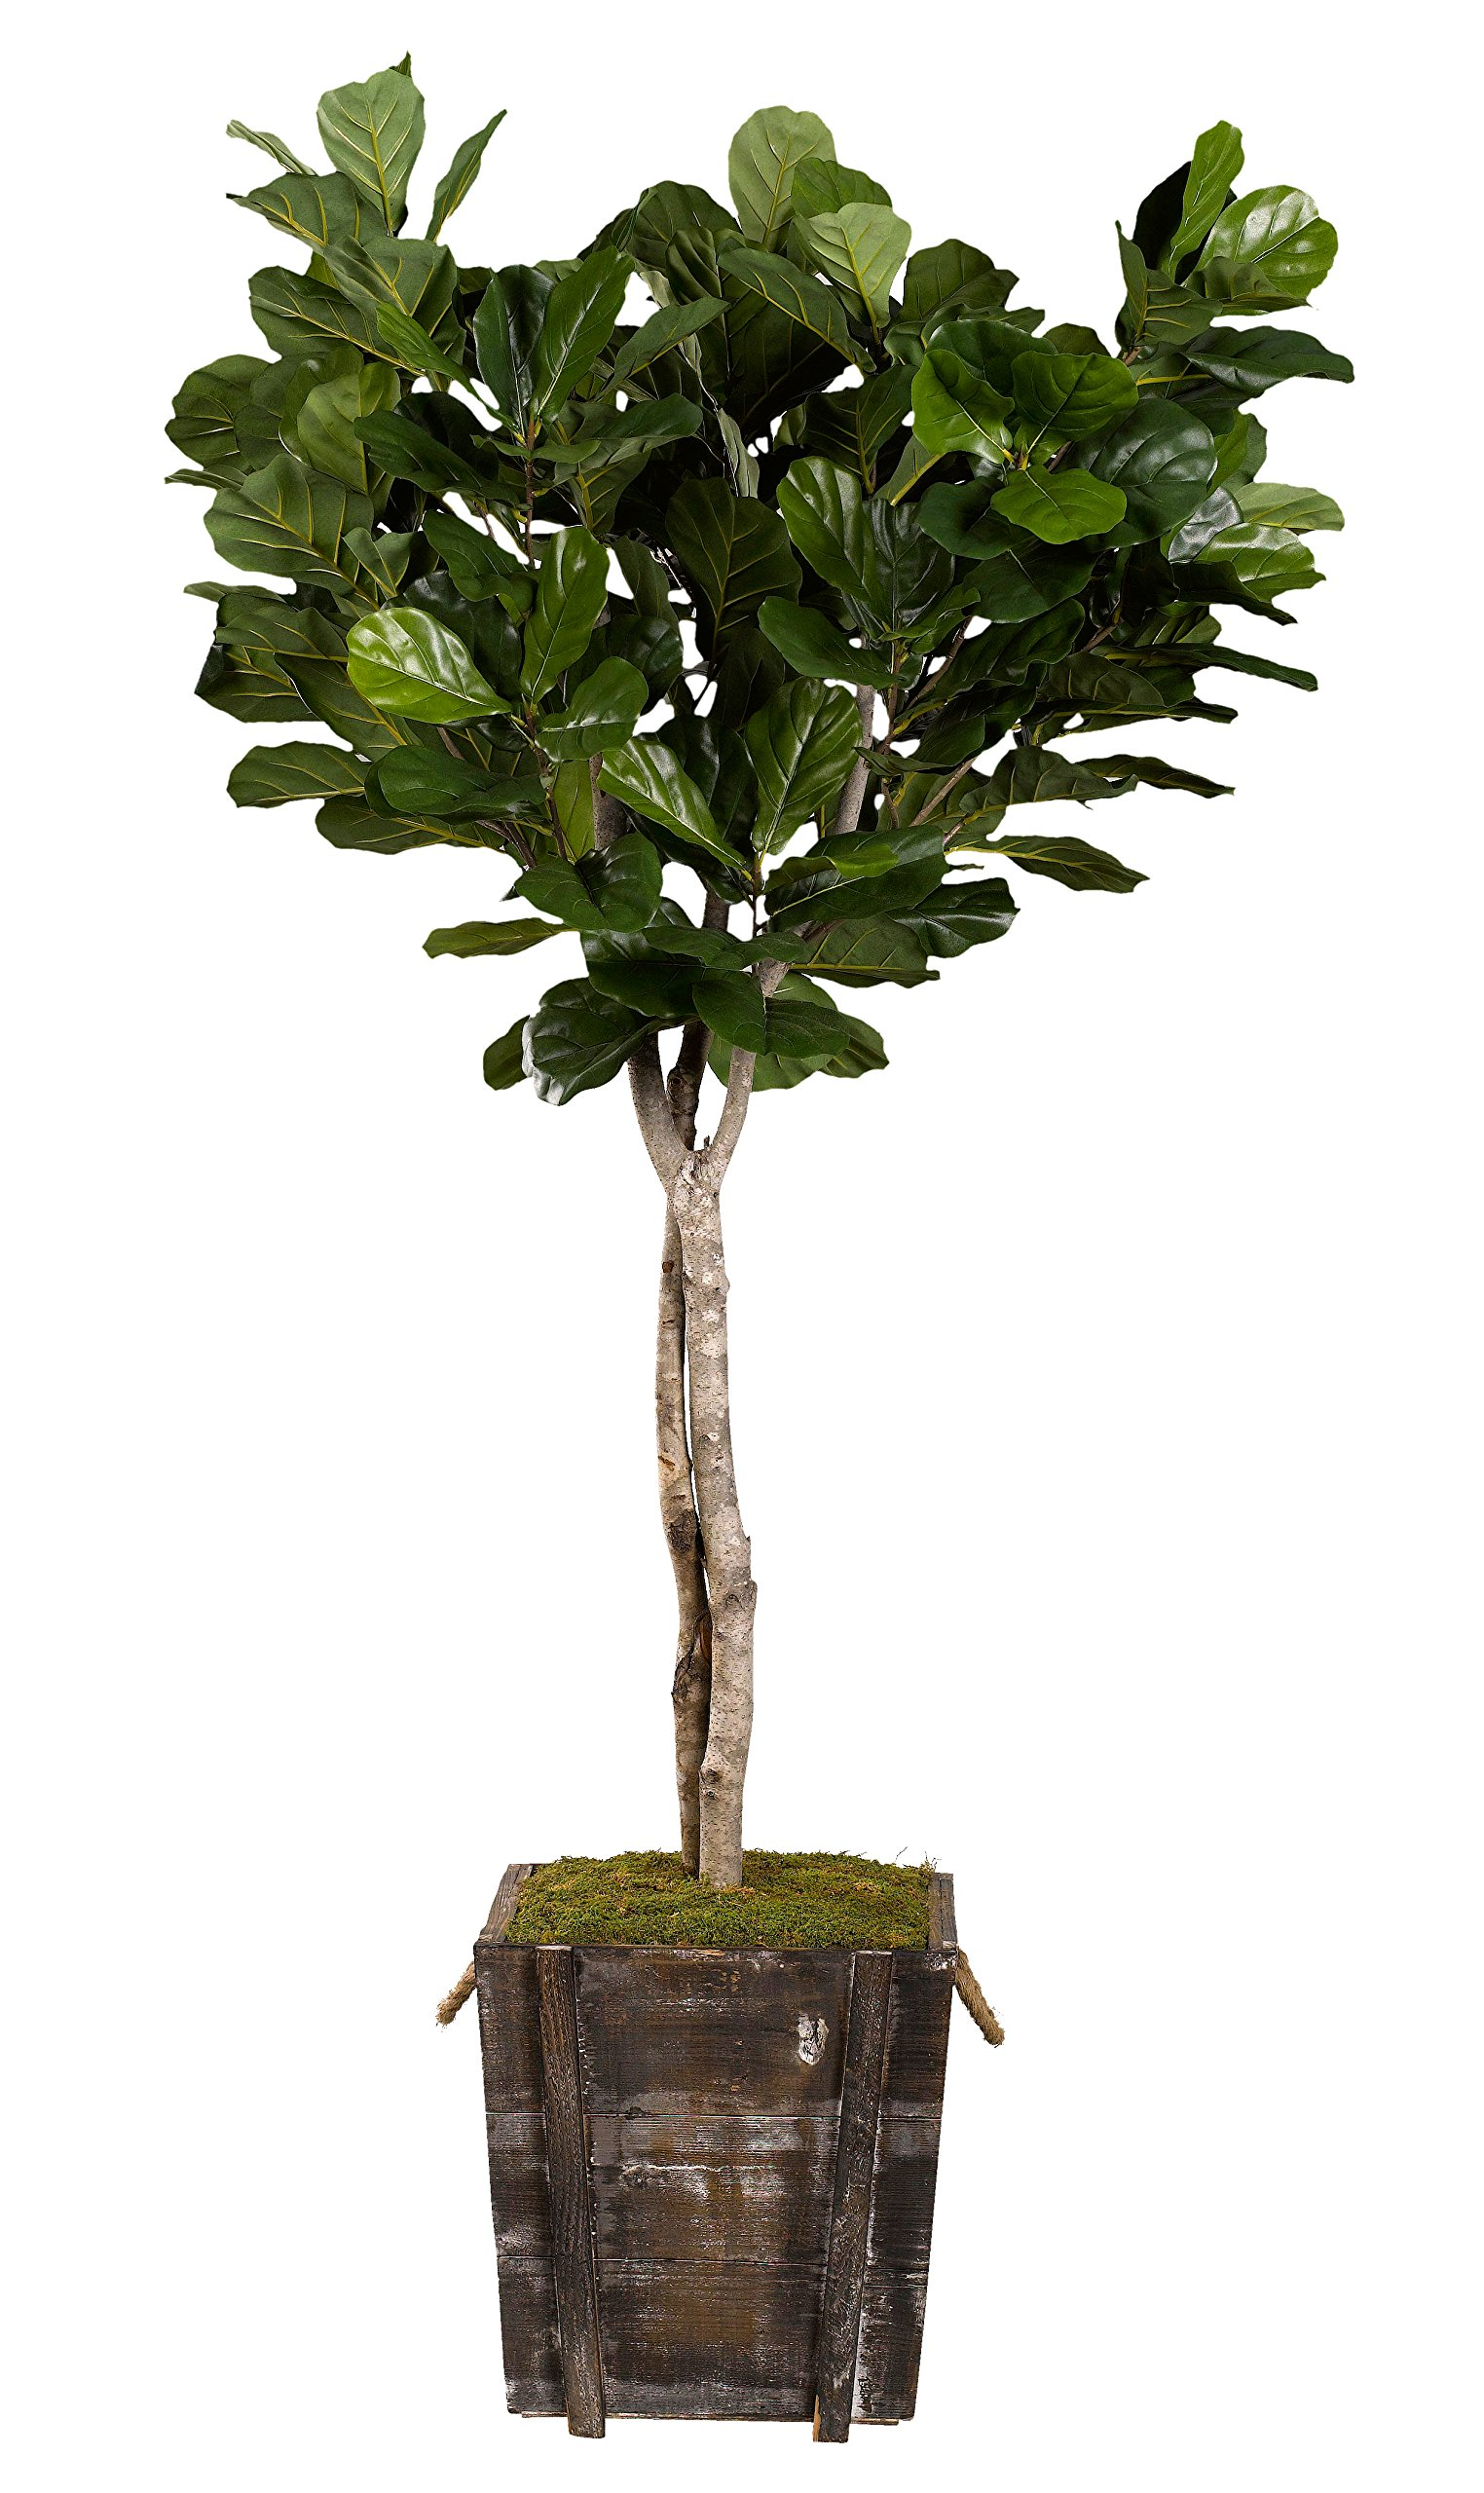 D & W Silks 317110 Fiddle Leaf Fig Tree in Rustic Wooden Planter, Green/Brown